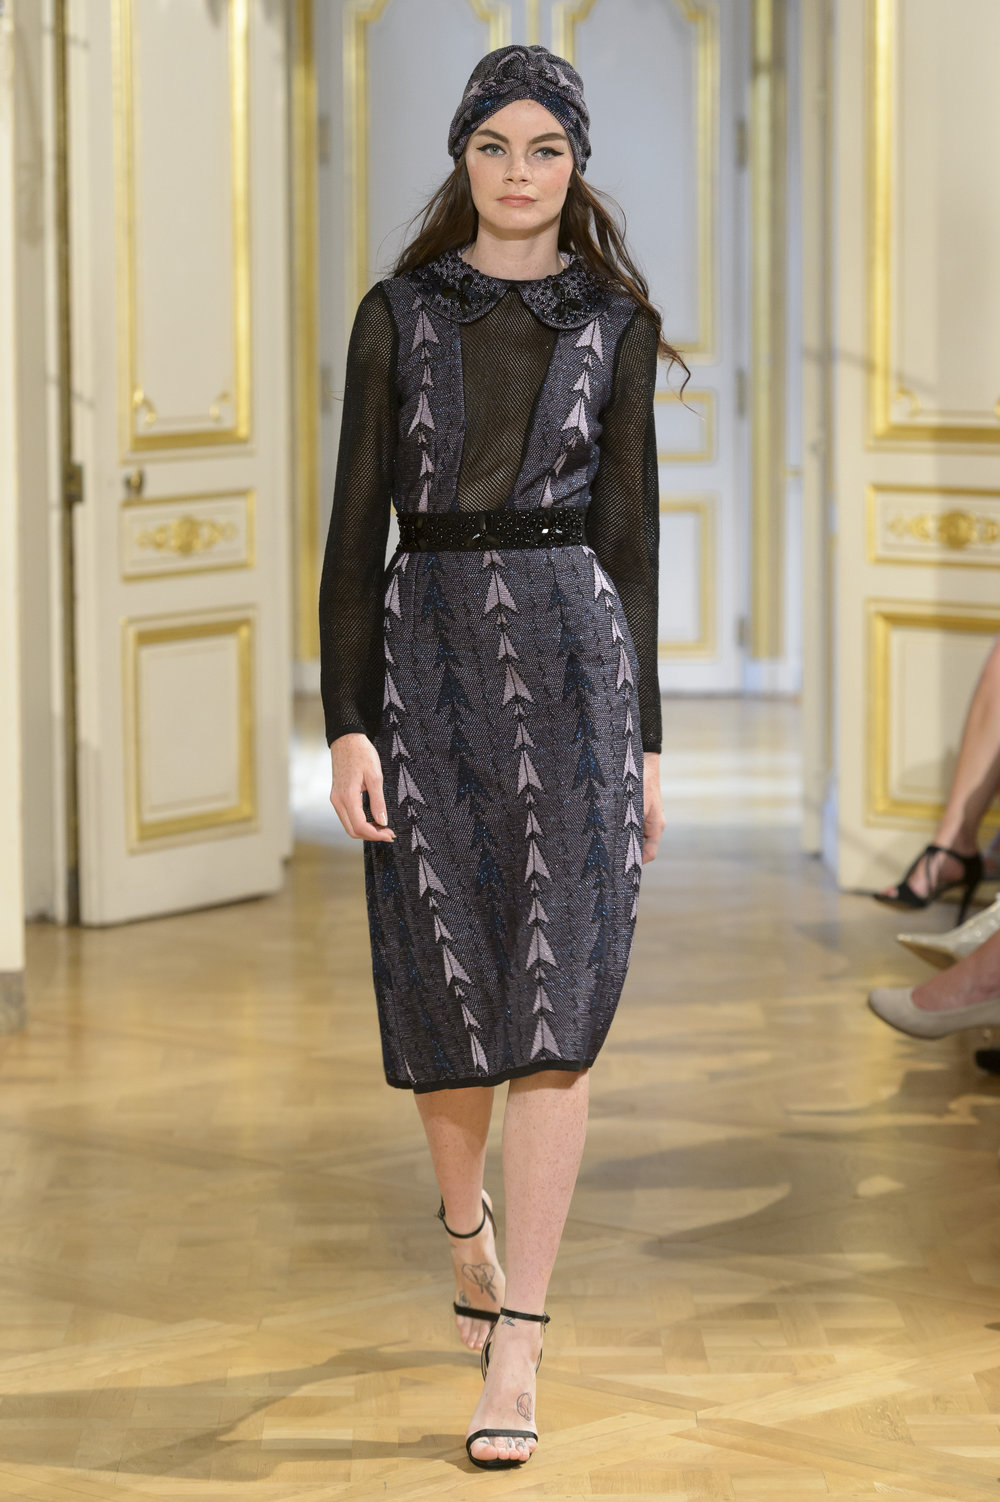 MARIA ARISTIDOU photos defile : fashion show %22Serendipity%22 couture collection automne hiver : fall winter 2018 2019 PFW - © Imaxtree 16.jpg